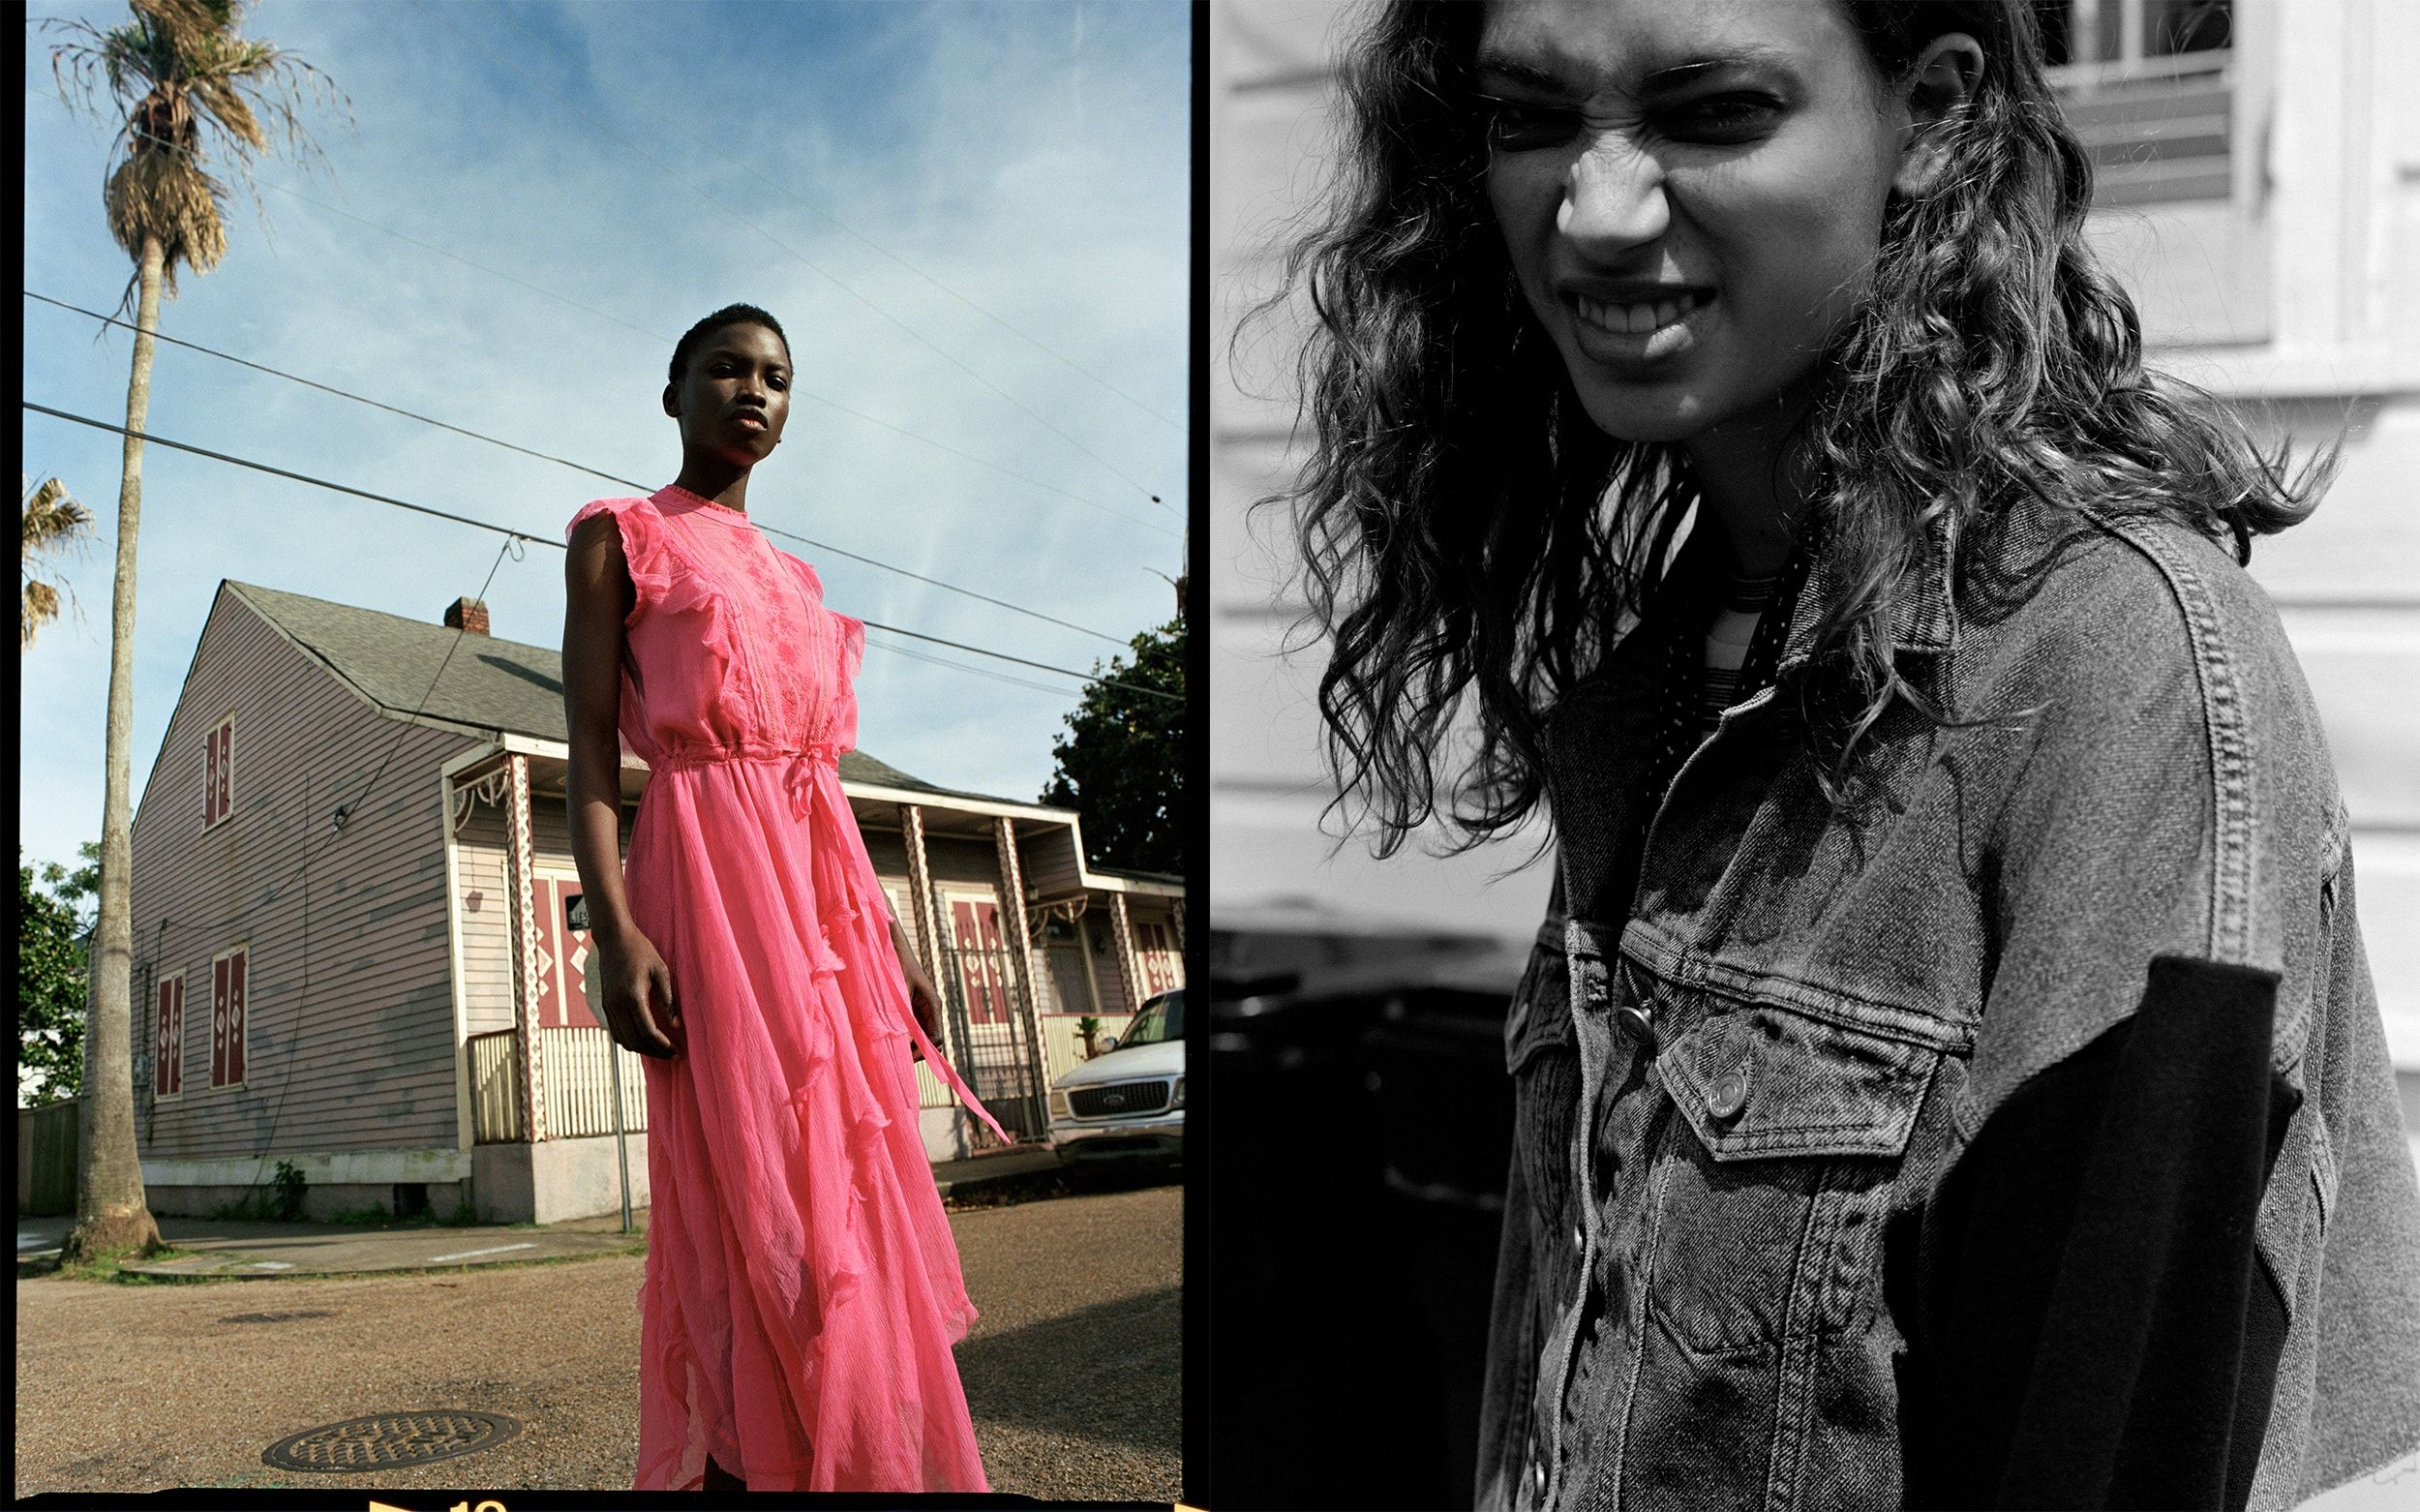 Two photographs from our Lost In New Orleans campaign, depicting an image of a young woman in the street wearing a vibrant pink dress, and a black-and-white portrait of a young woman wearing a denim jacket.